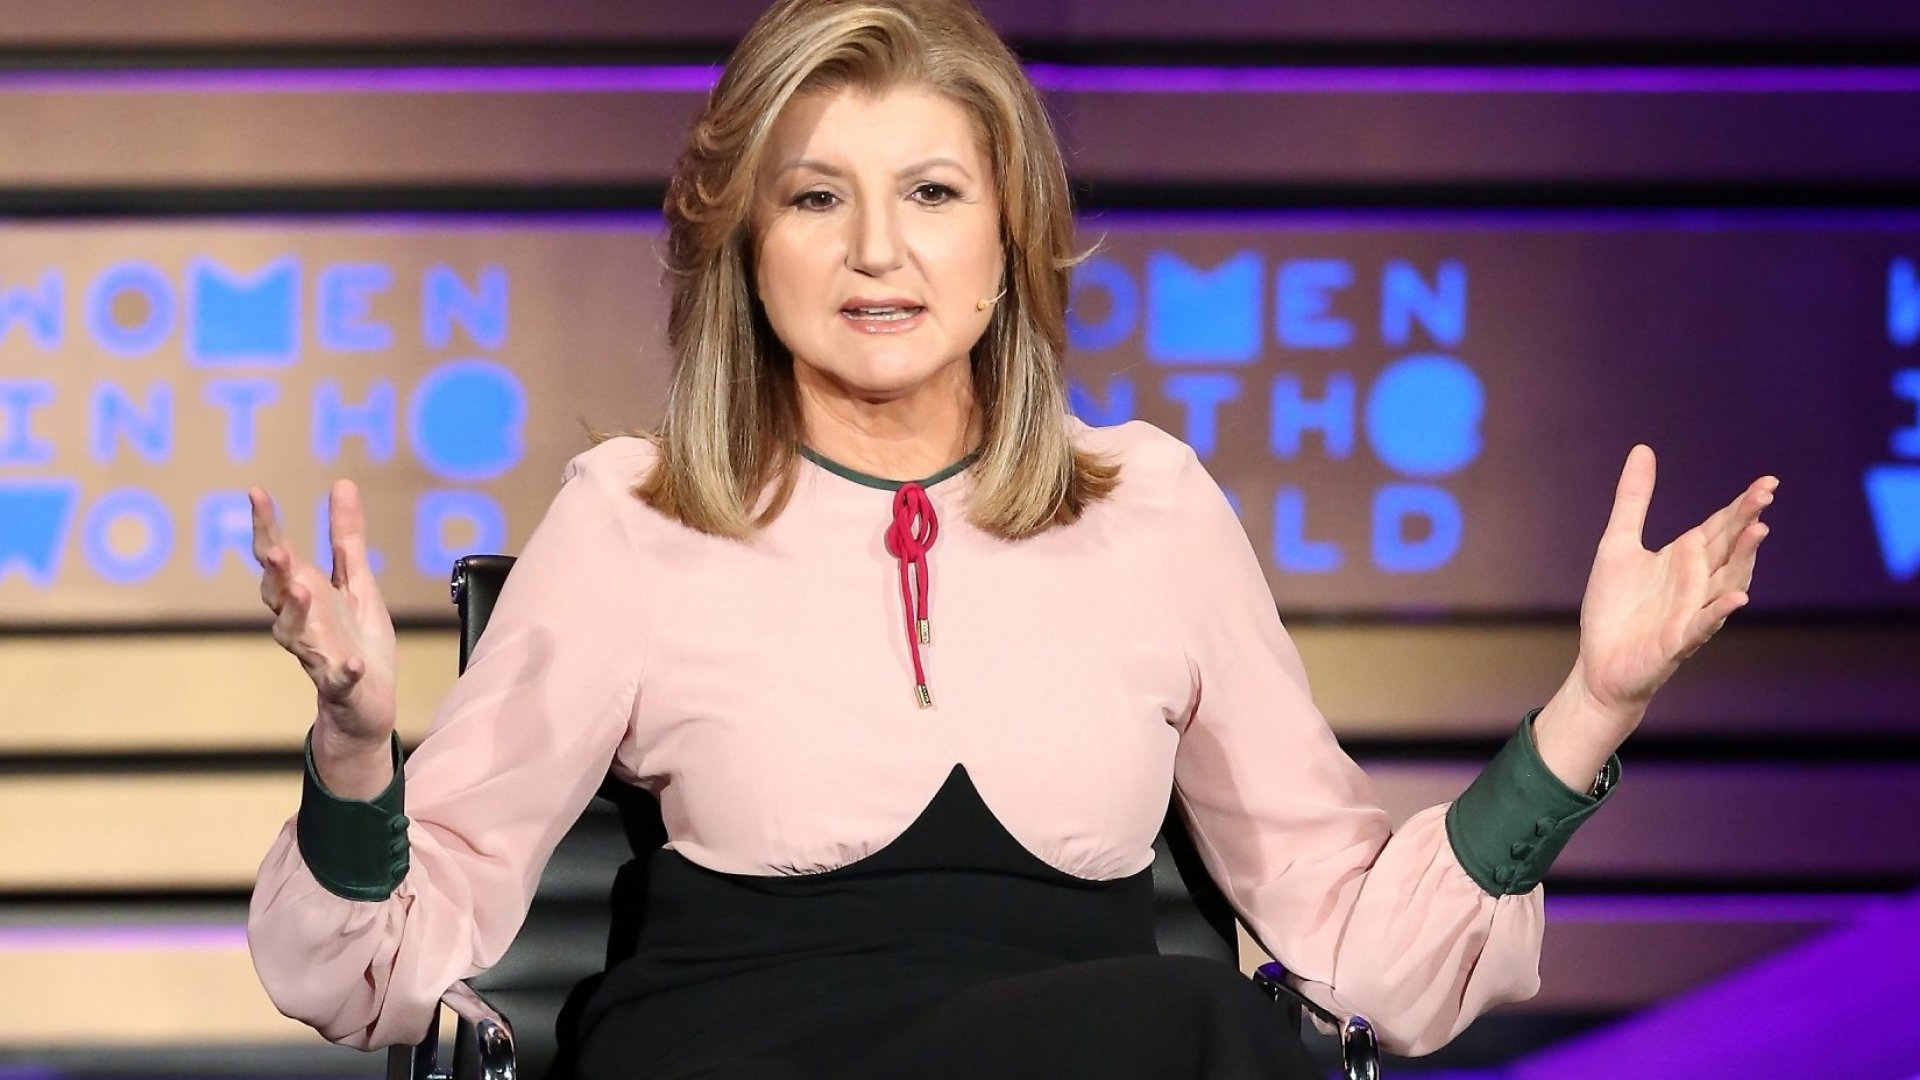 Want Happier and More Productive Employees? Let Them Sleep More, Says Arianna Huffington